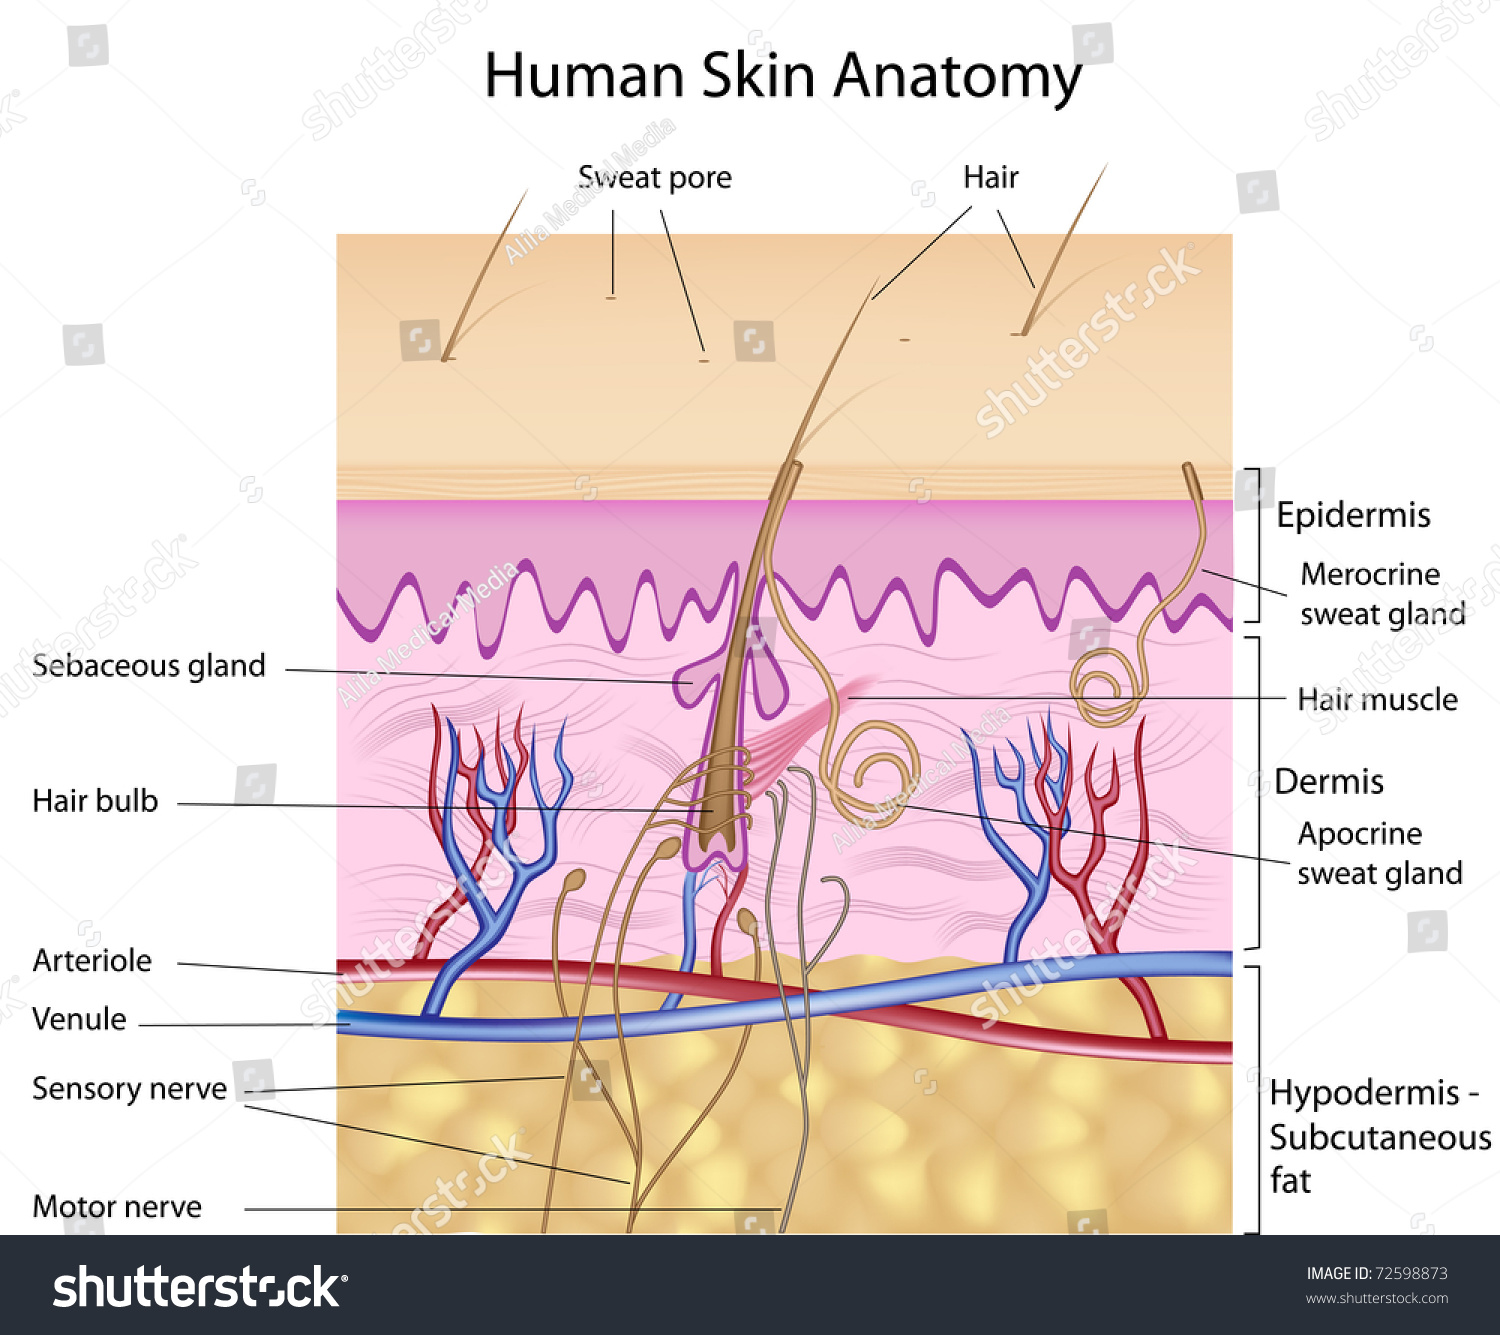 Human Skin Anatomy Detailed Accurate Labeled Stock